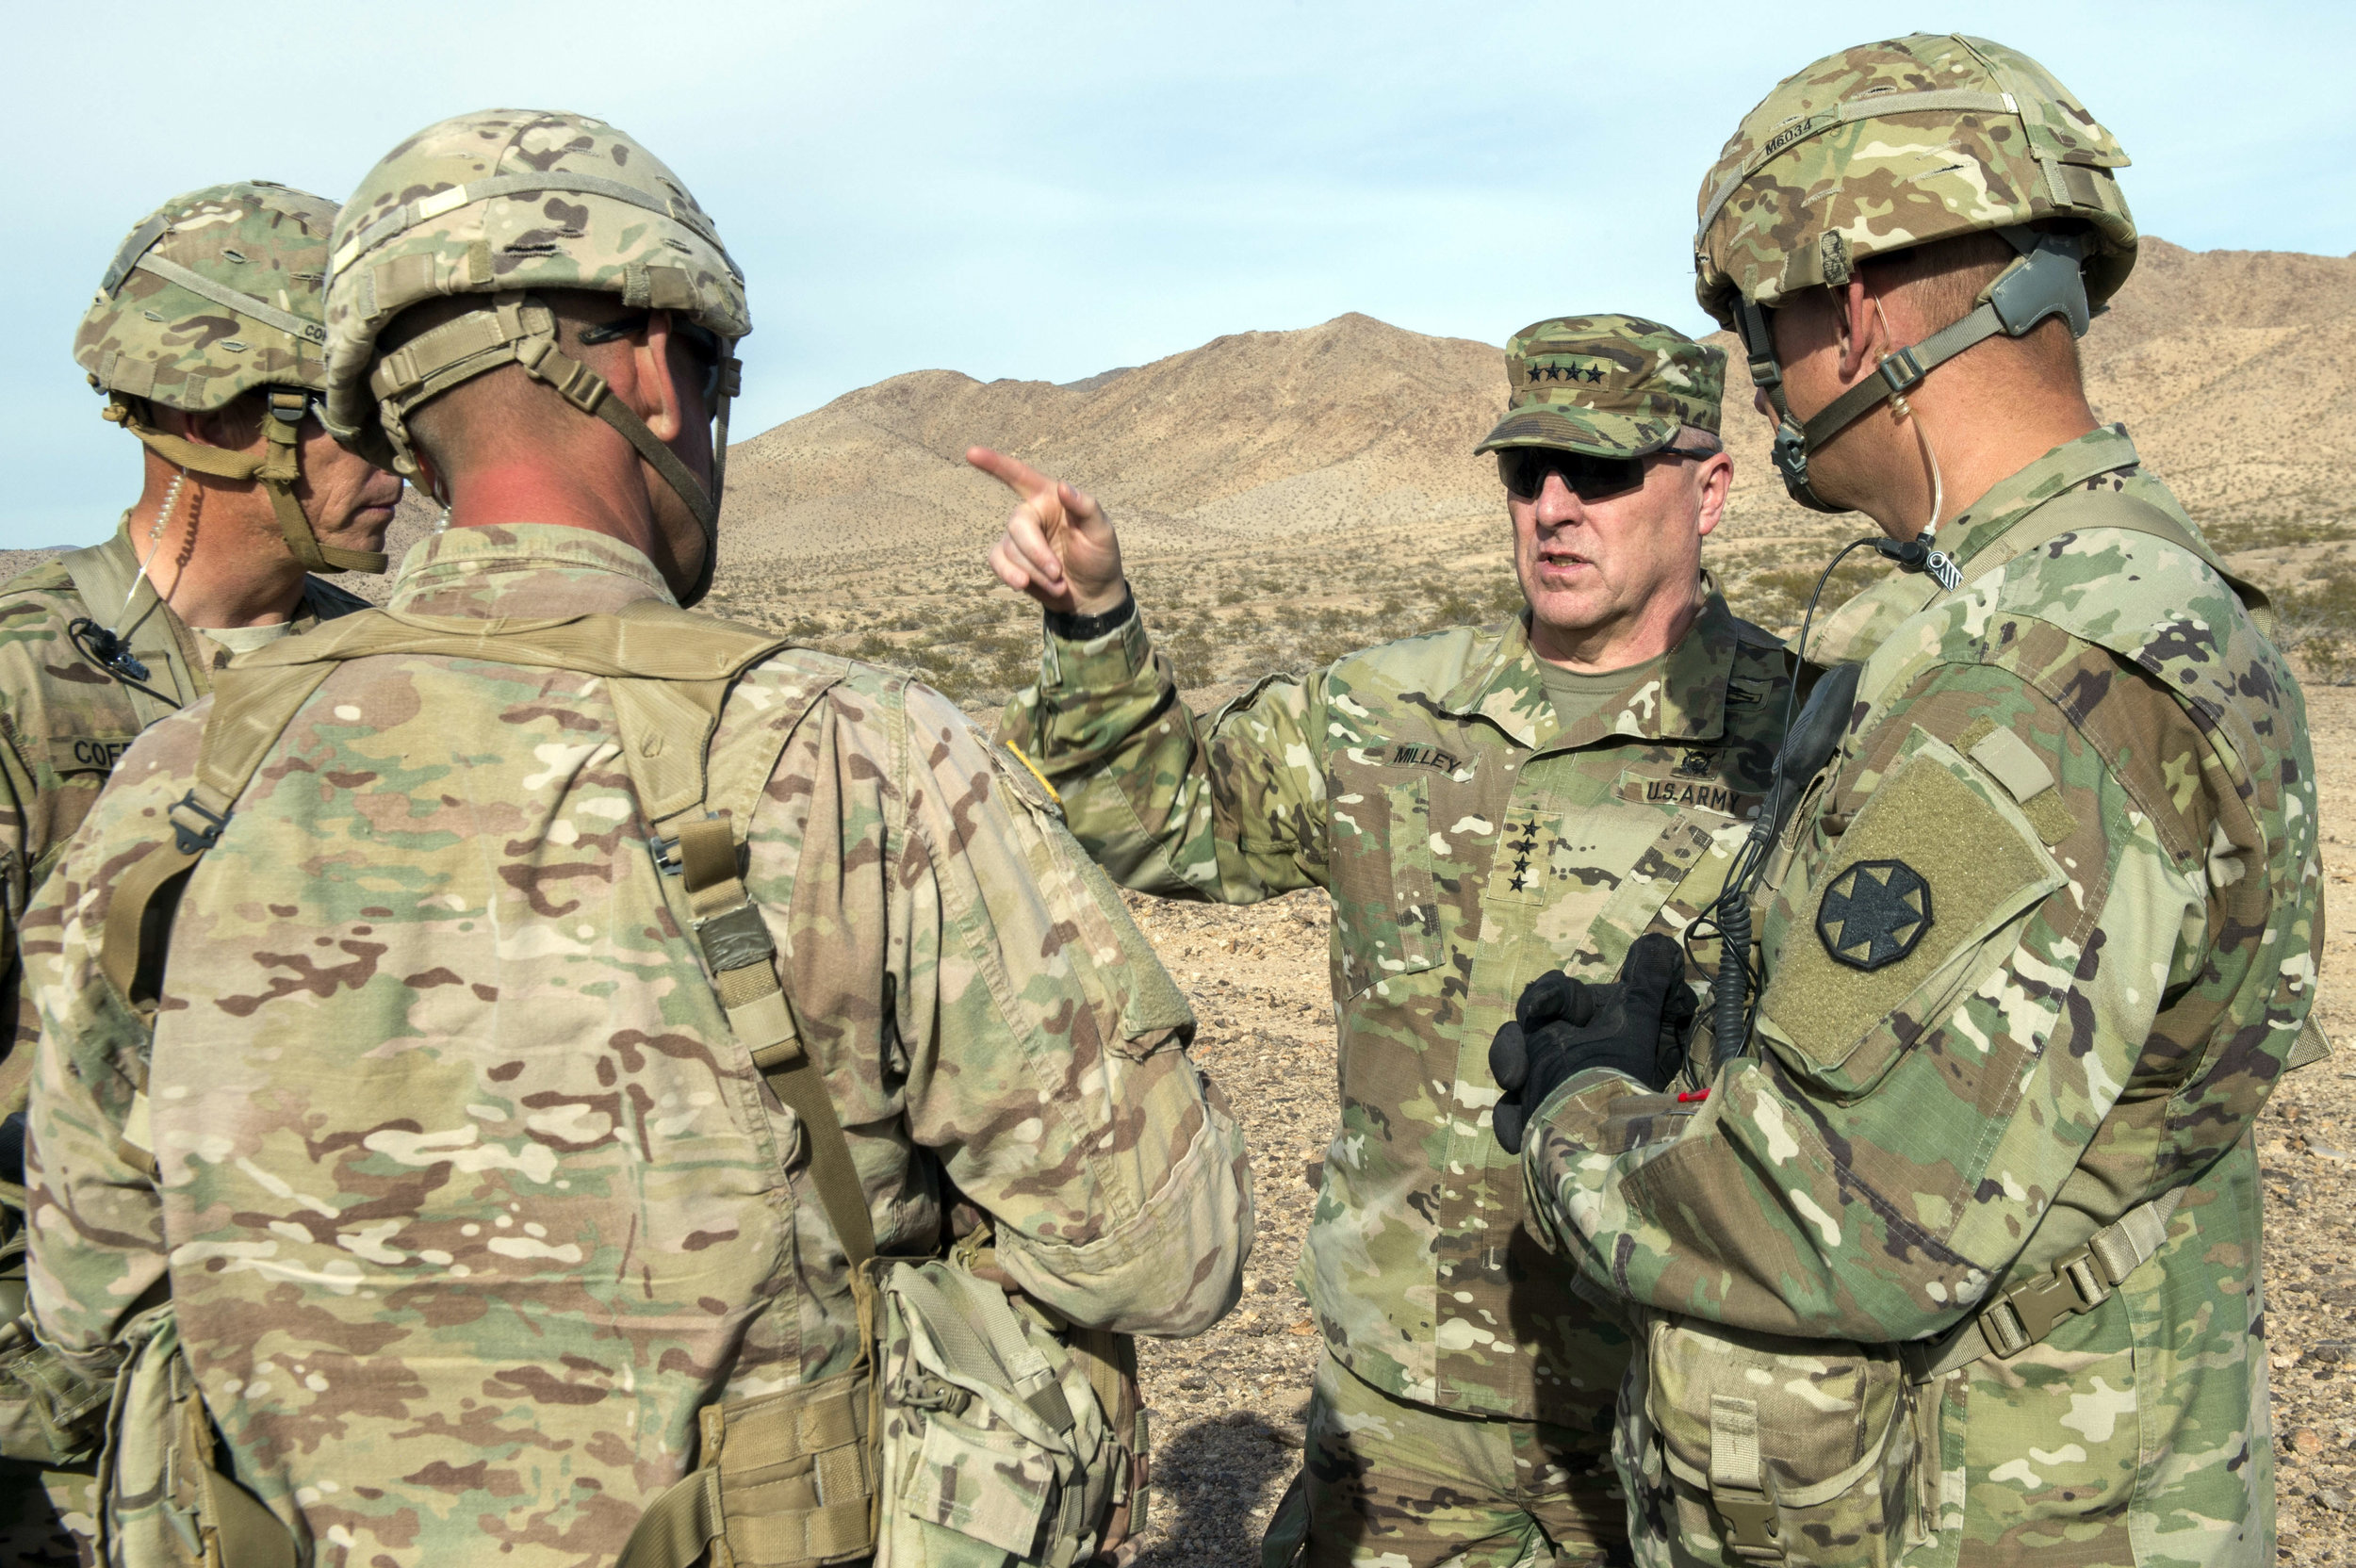 U.S. Army Chief of Staff, Gen. Mark A. Milley, talks with Observer Controllers at the U.S. Army National Training Center, Ft. Irwin, Calif., November 6, 2016.(U.S. Army Photo/SFC Chuck Burden)